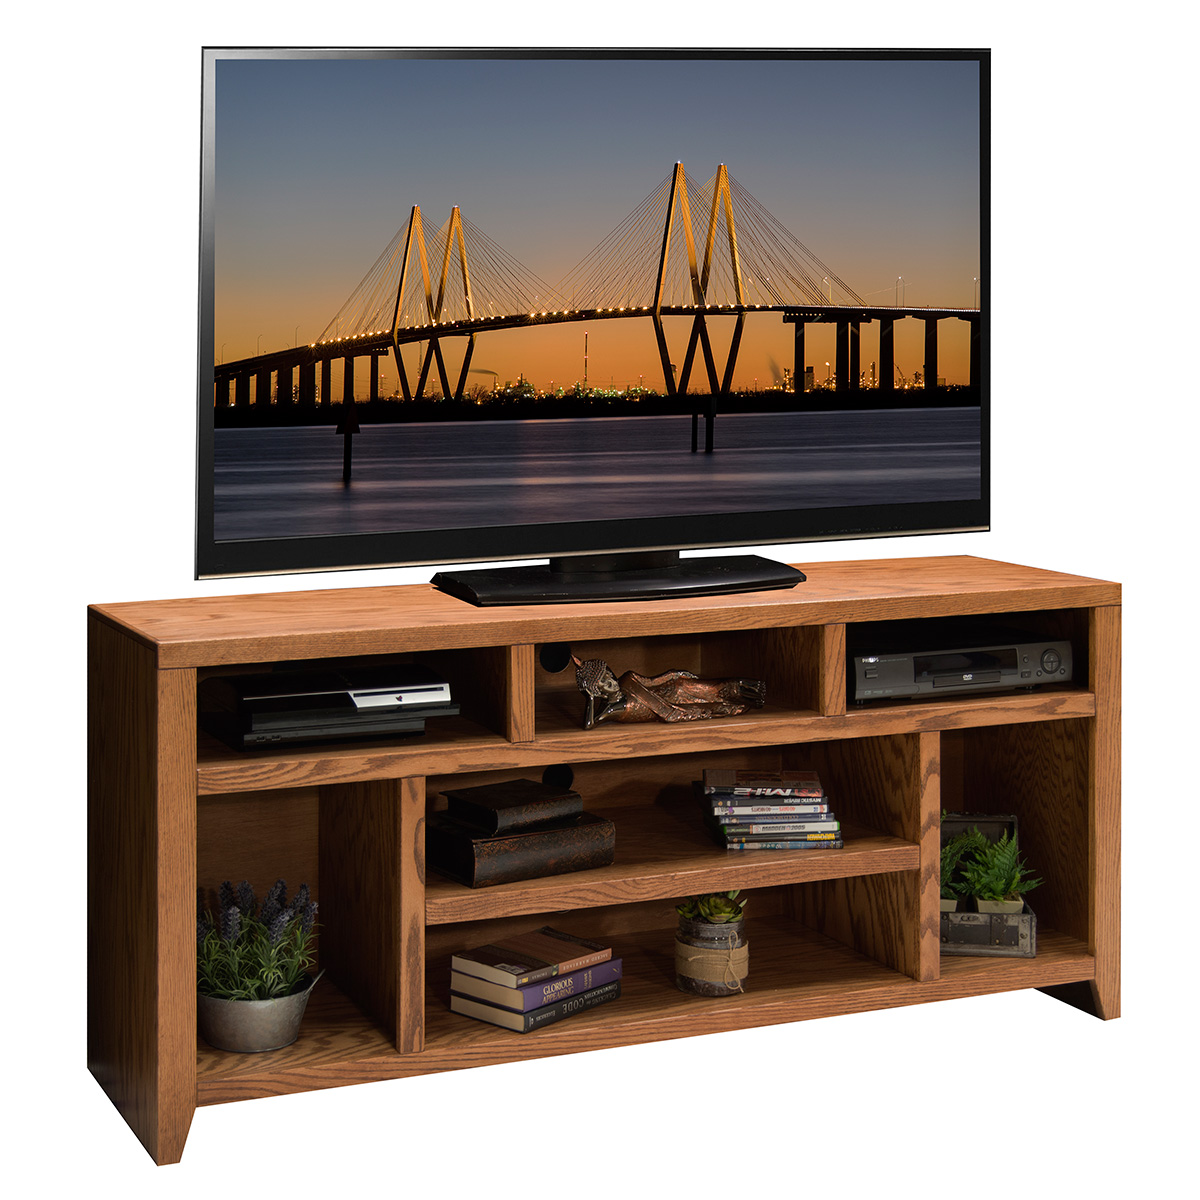 Legends furniture cl1209 city loft 66 tv stand console in golden oak Home design golden city furniture